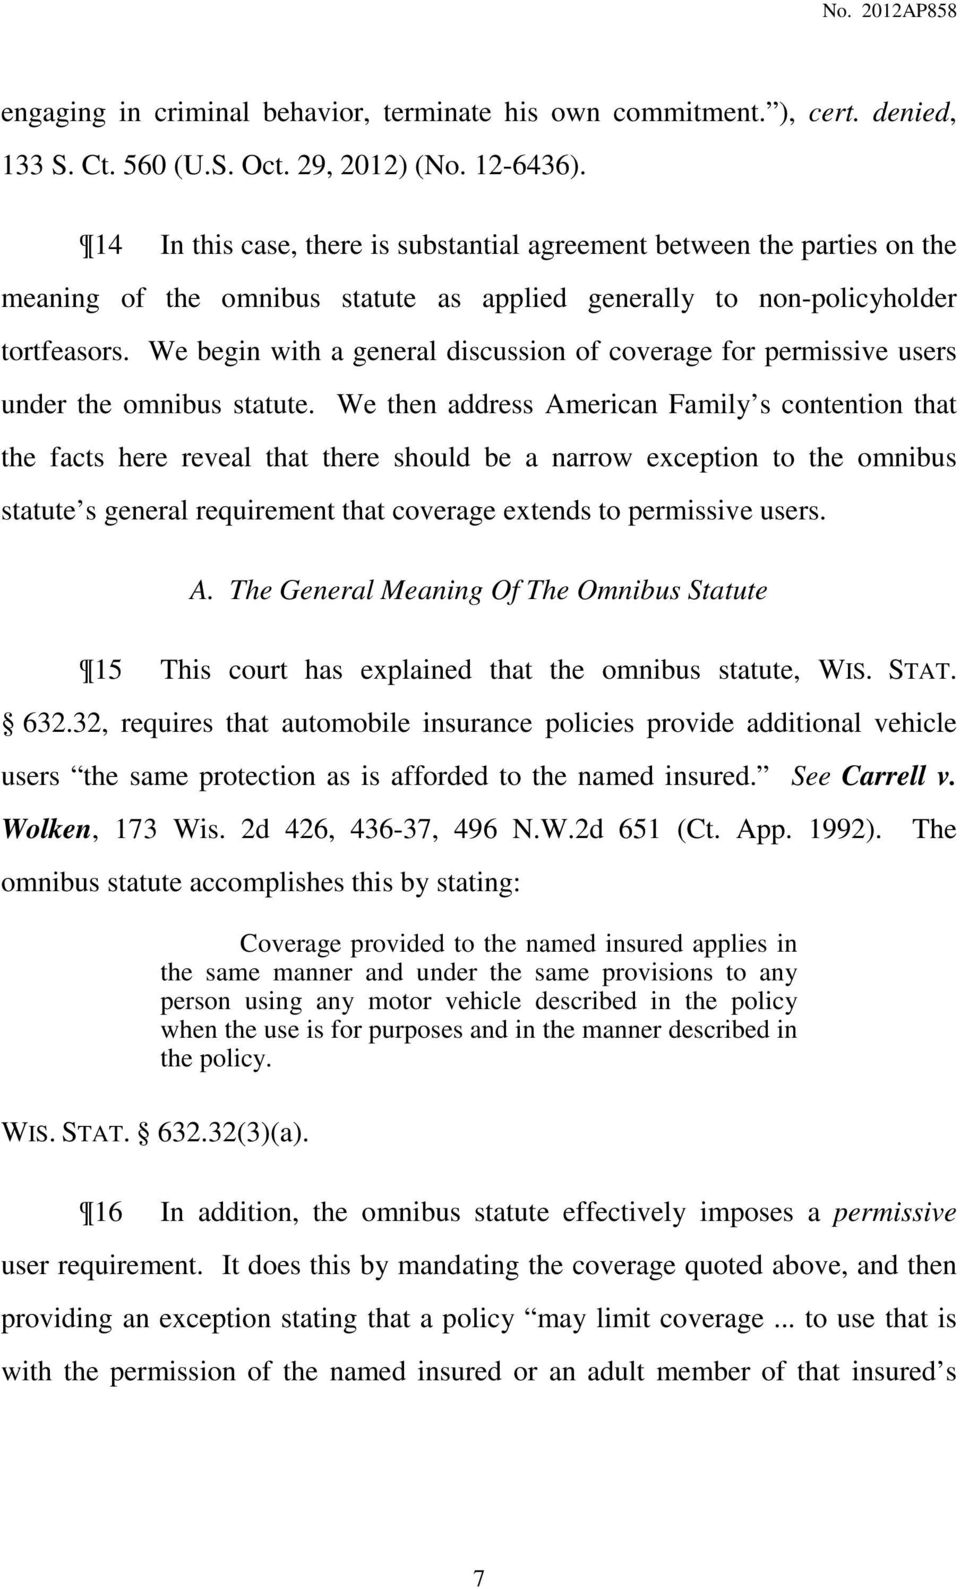 We begin with a general discussion of coverage for permissive users under the omnibus statute.